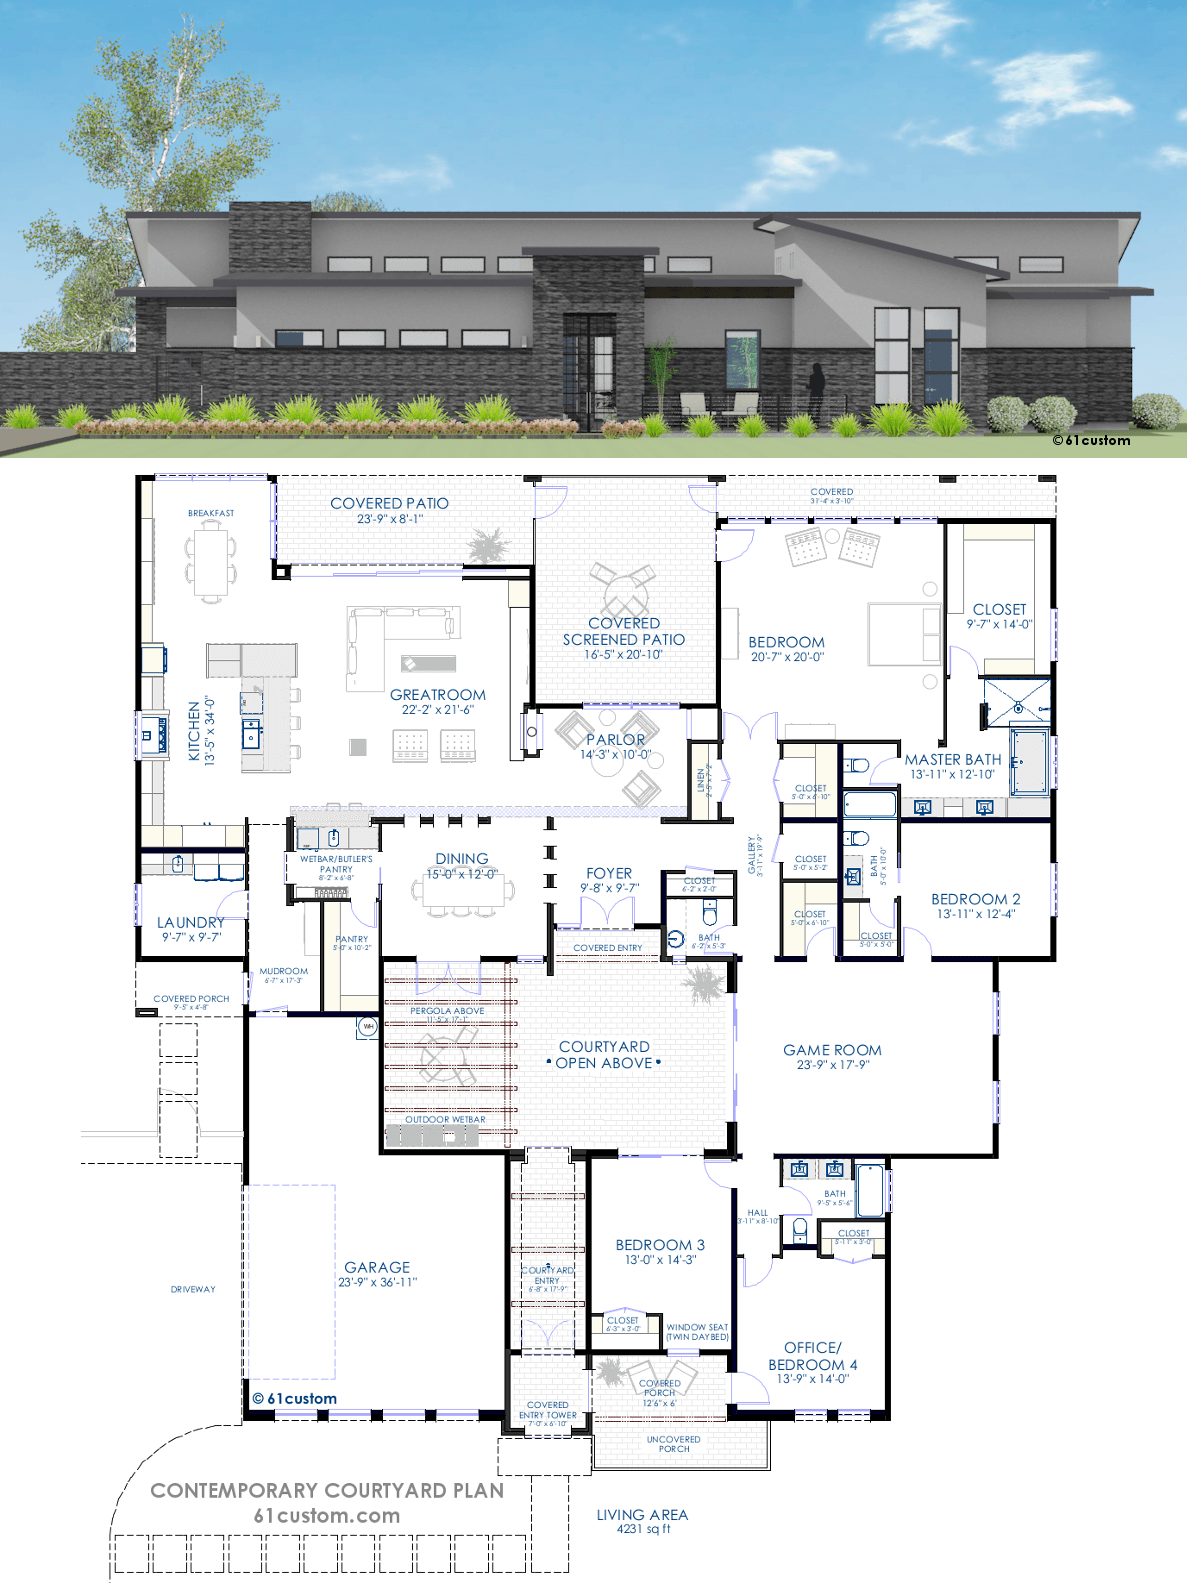 design a house plan contemporary courtyard house plan 61custom modern 17230